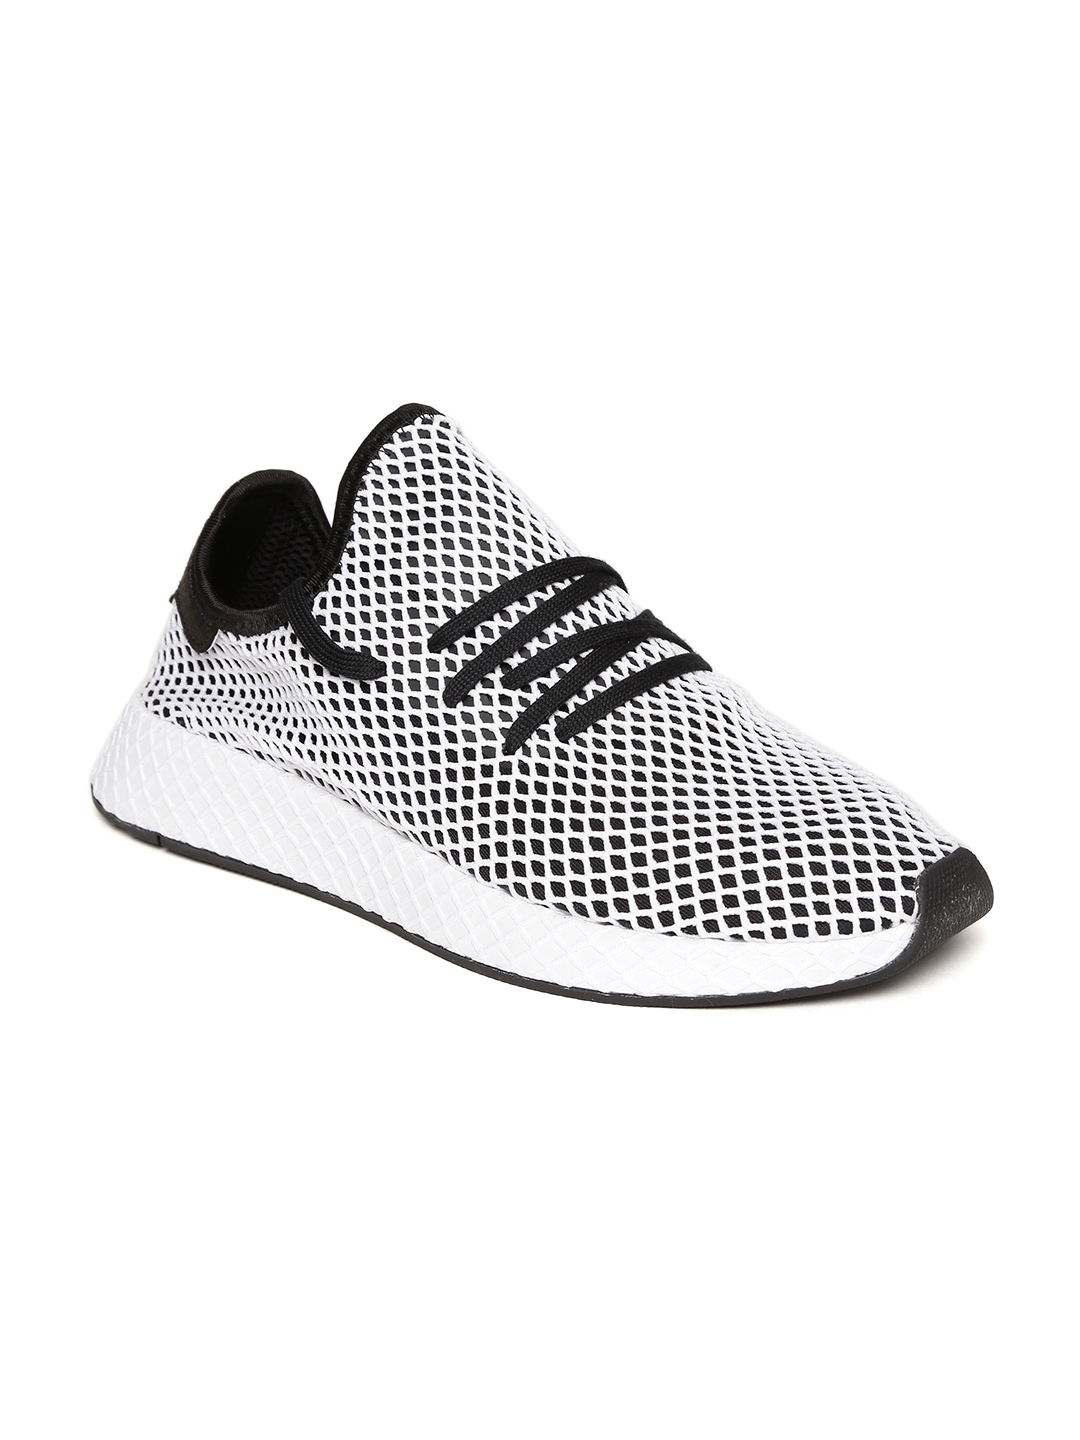 bdabc77a653c9 ADIDAS Originals Men White   Black Deerupt Runner Patterned Sneakers